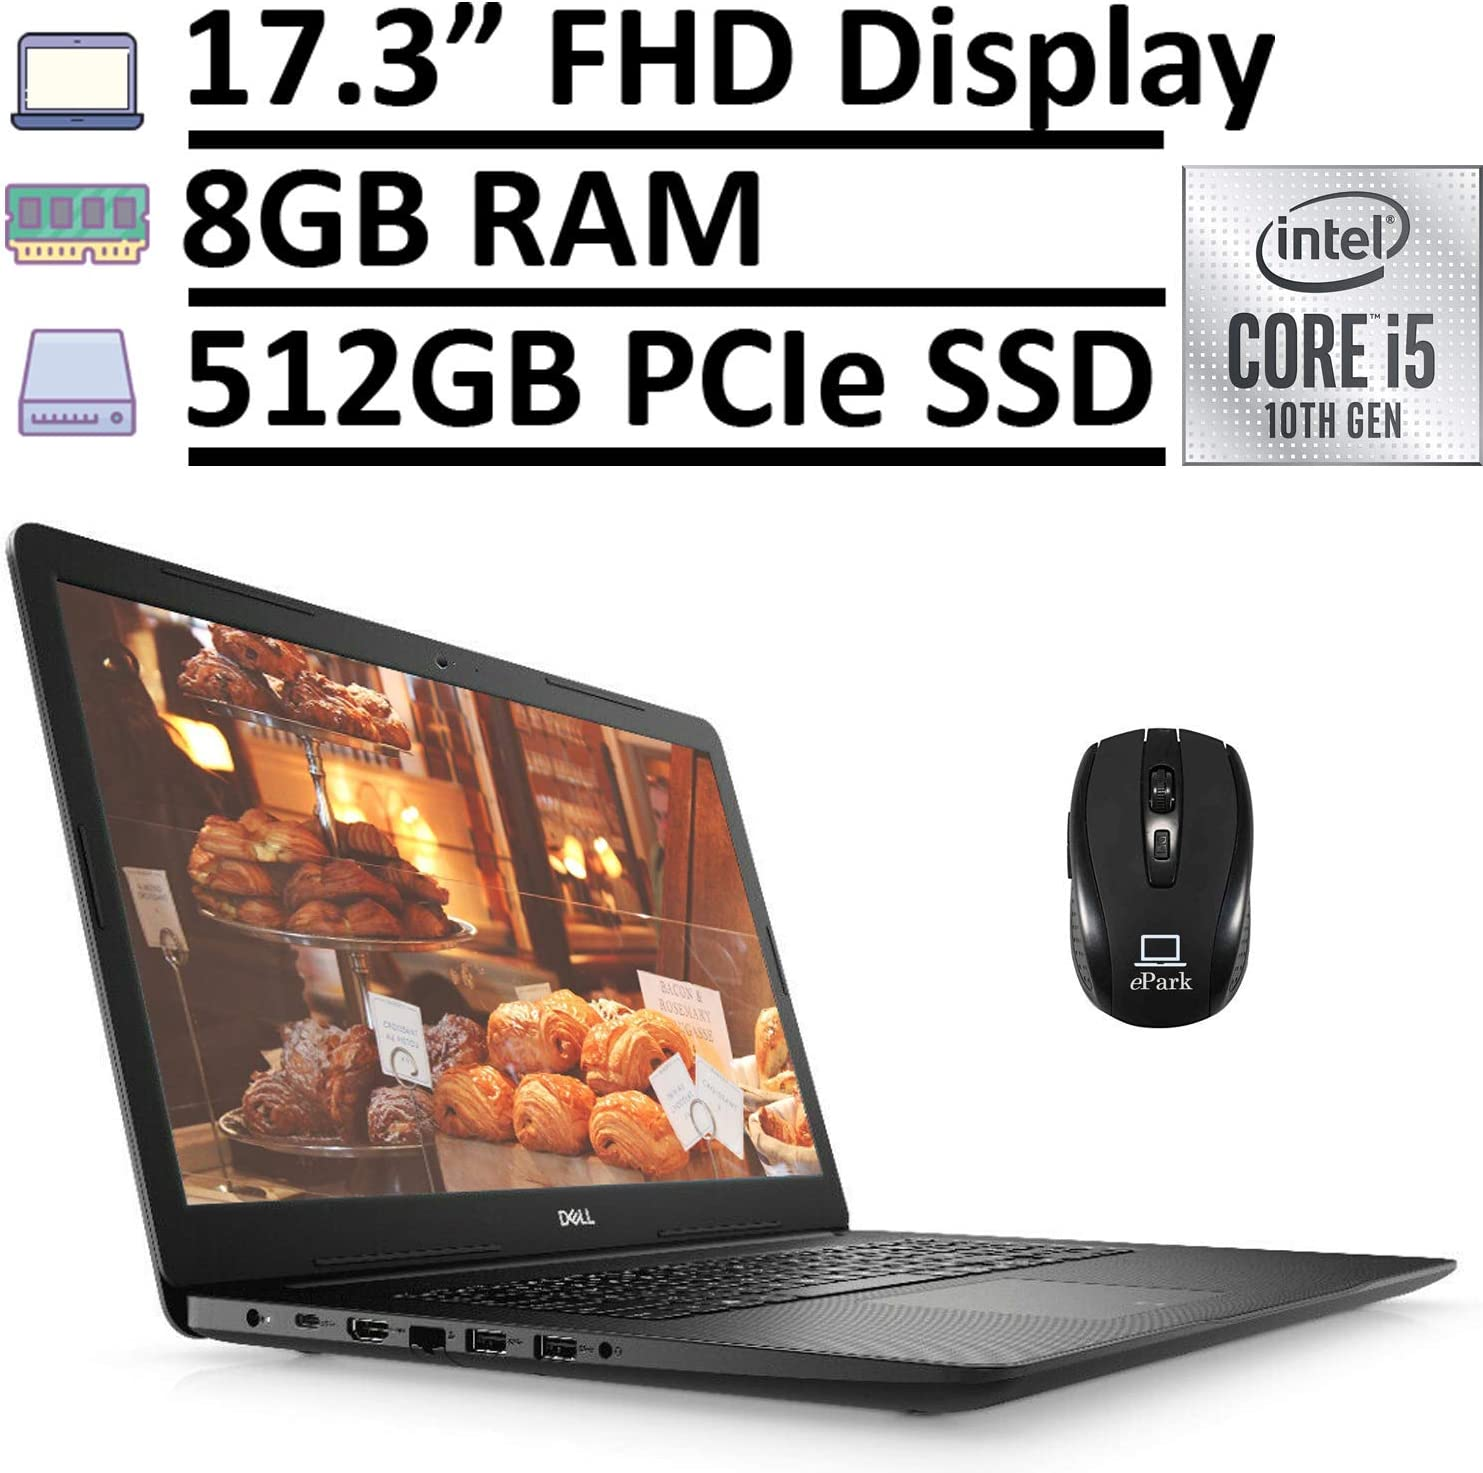 """2020 Newest Dell Inspiron 17 3000 3793 Laptop Computer, 17.3"""" FHD 1080p Anti-Glare Display, 10th Gen Intel Core i5-1035G1 8GB RAM 512GB PCIe SSD, Webcam Type-C Win 10 + ePark Wireless Mouse"""